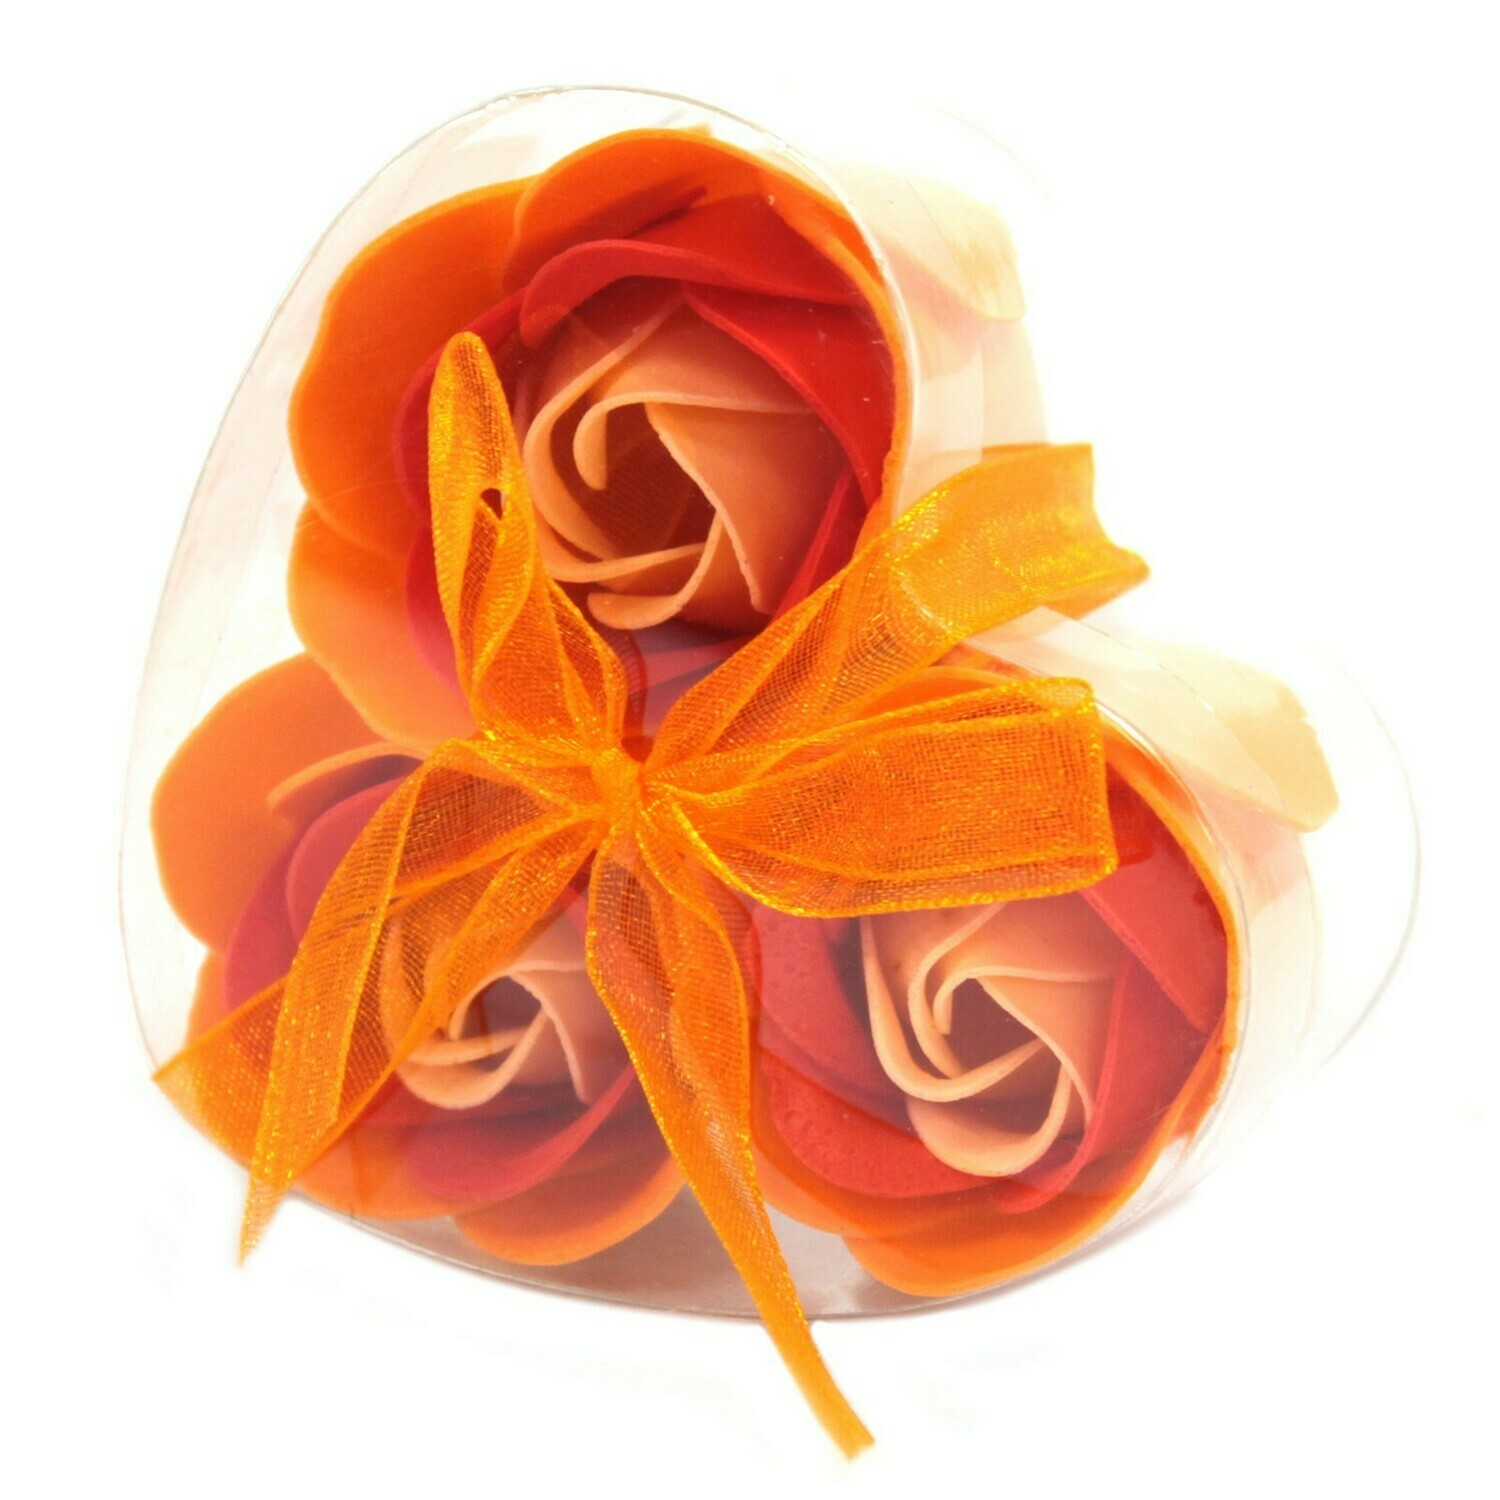 9 Luxury Soap Flower Roses - 3 Peach, 3 Pink and 3 White.